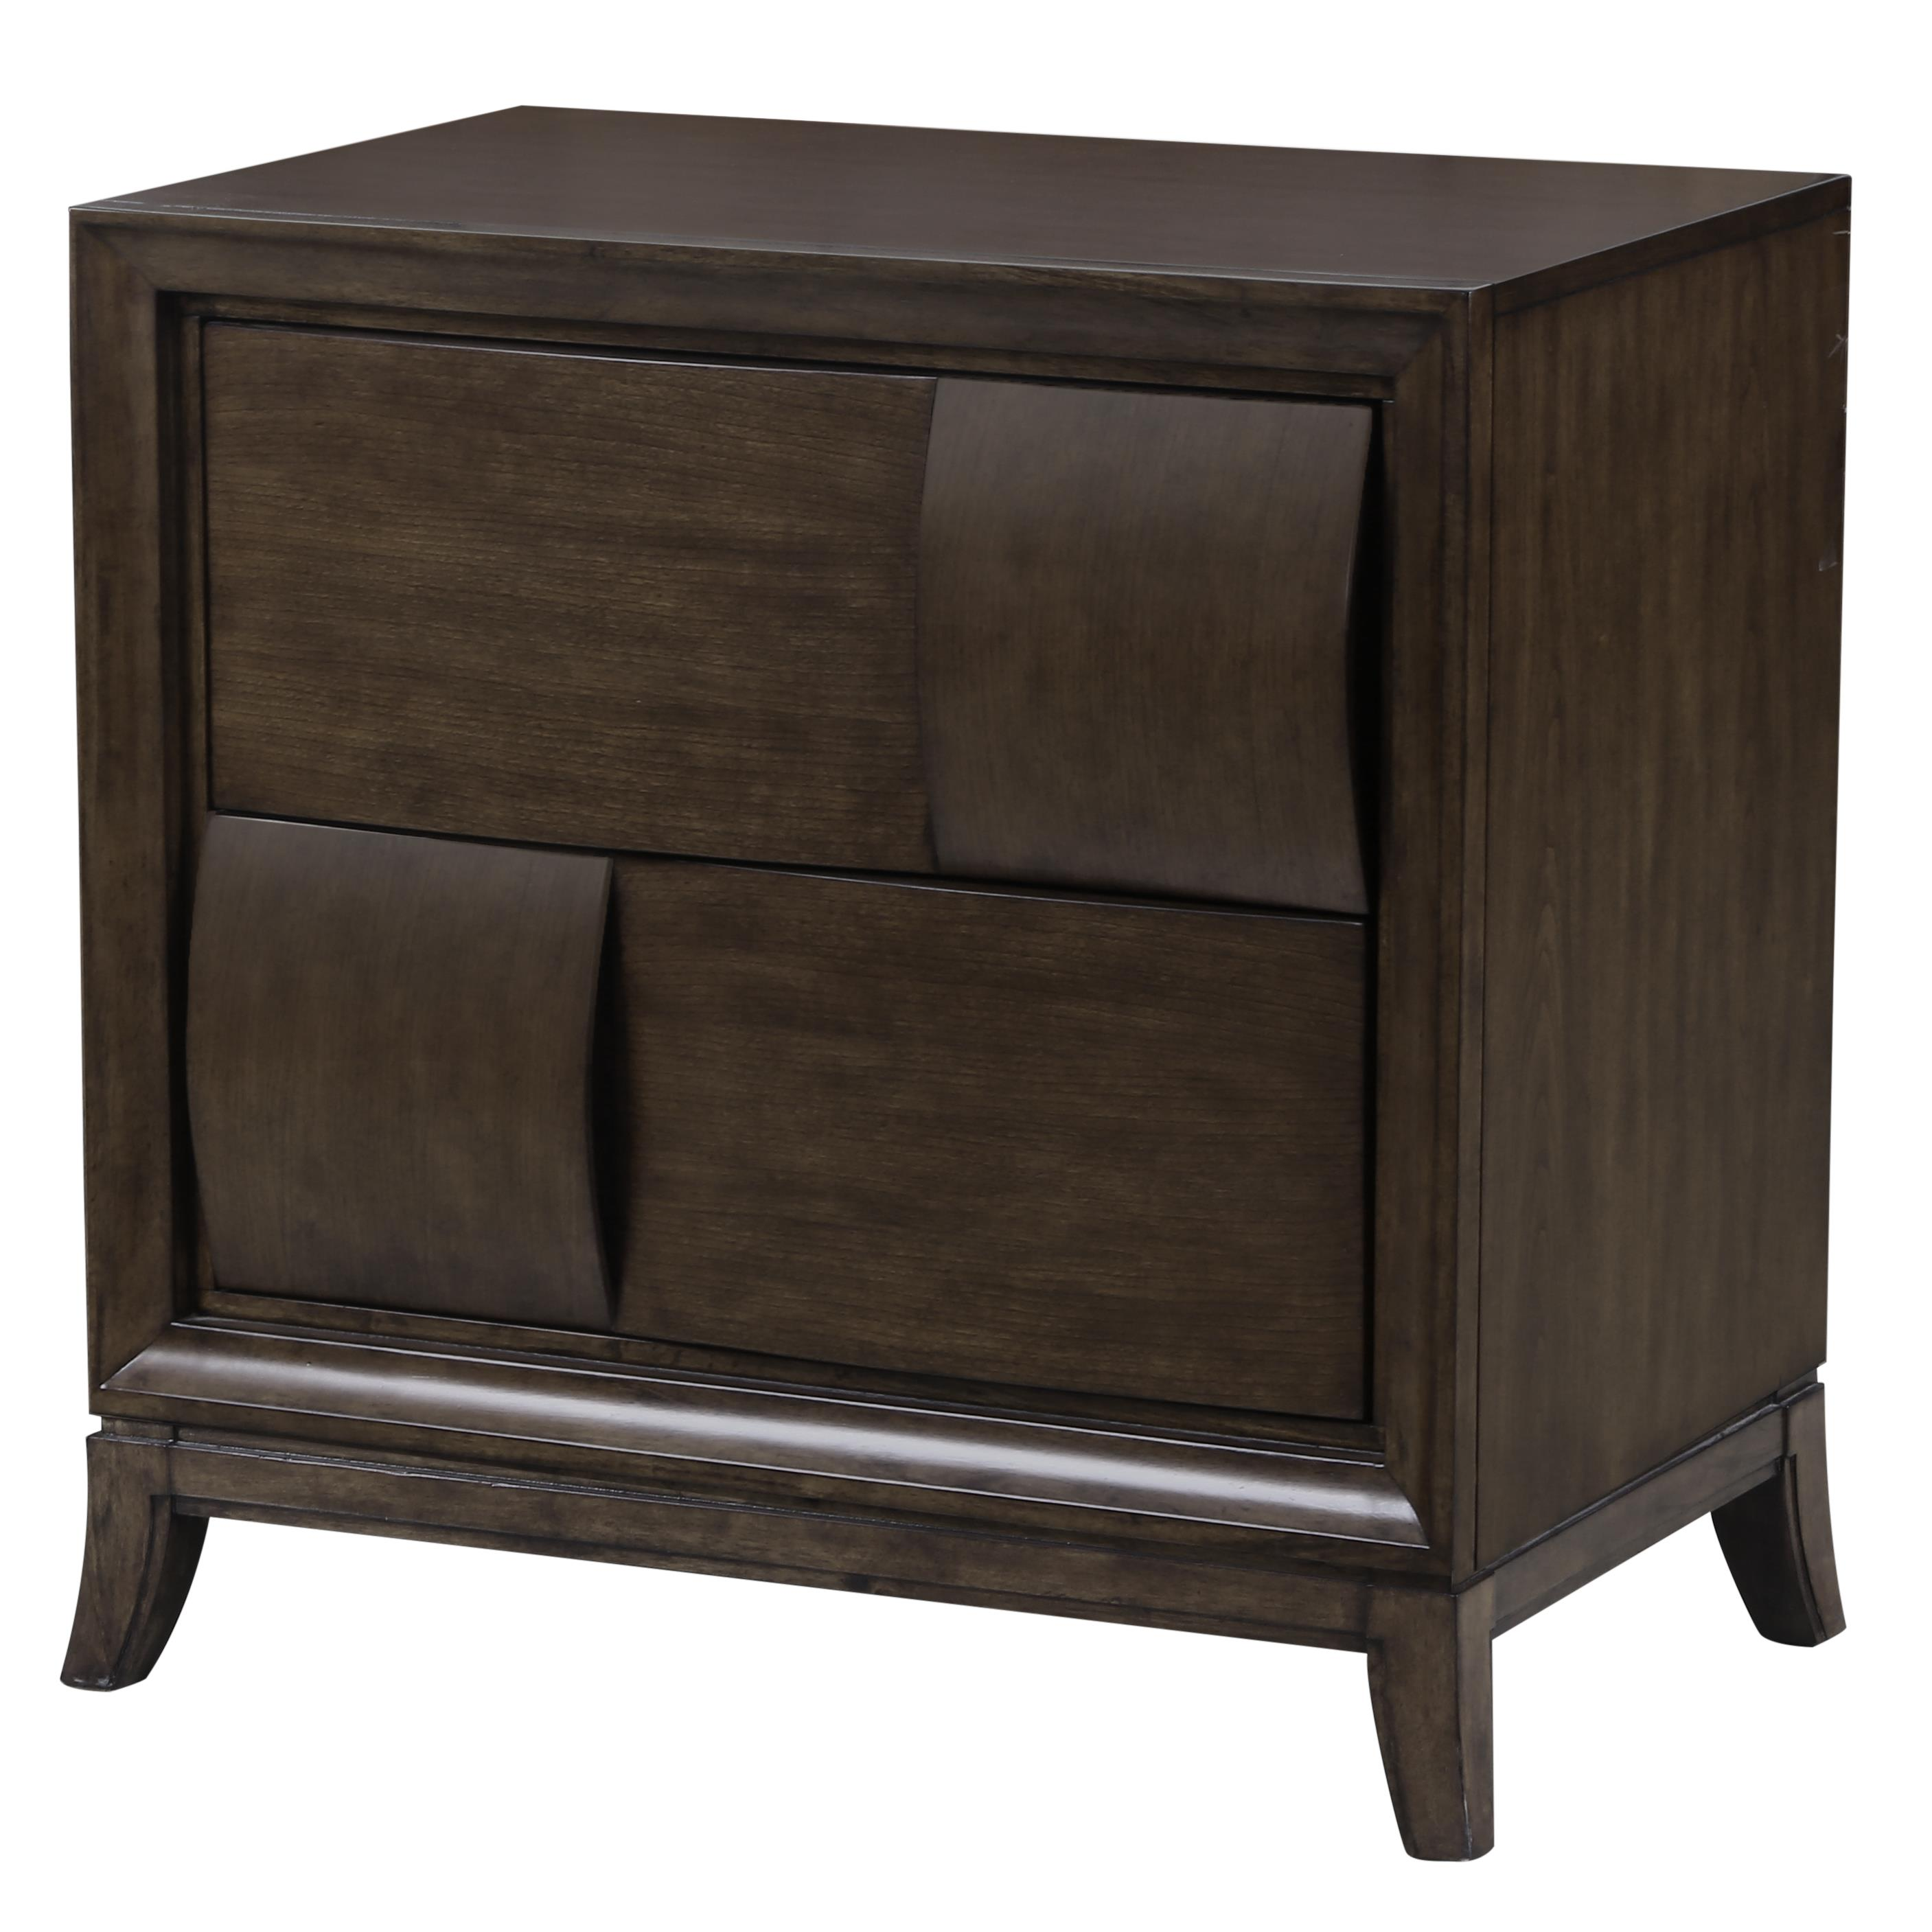 Magnussen Home Ribbons Two Drawer Nightstand with Touch Lighting Control Olinde s Furniture